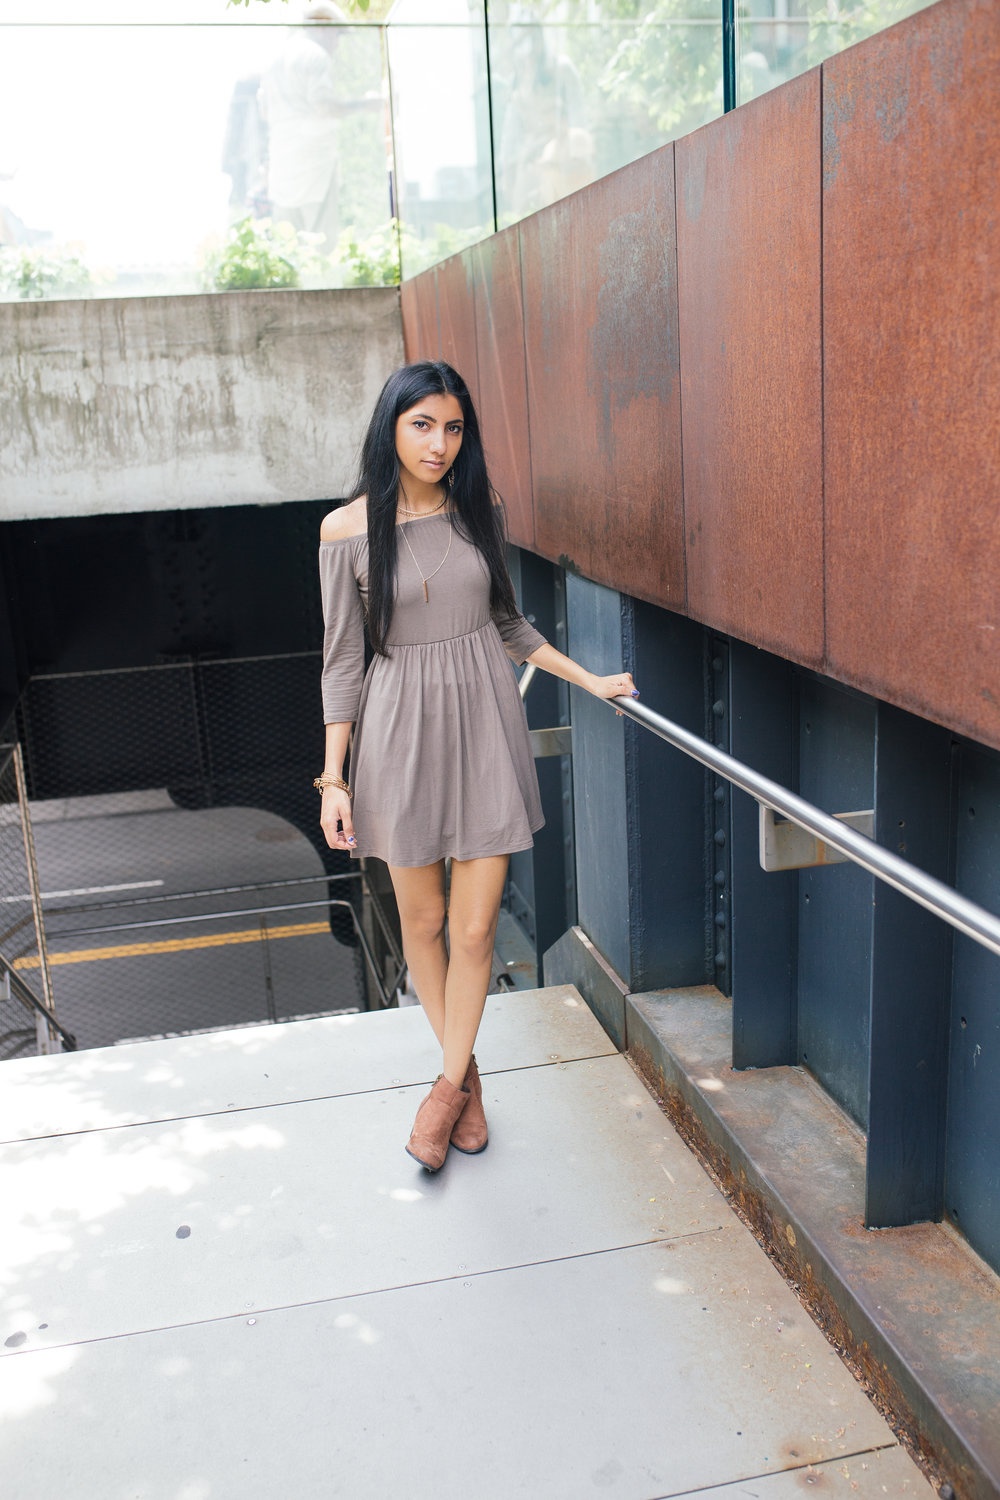 tobi.nycfashionblogger.dress.nycfashion.summerstyle.ootd.outfit.highline